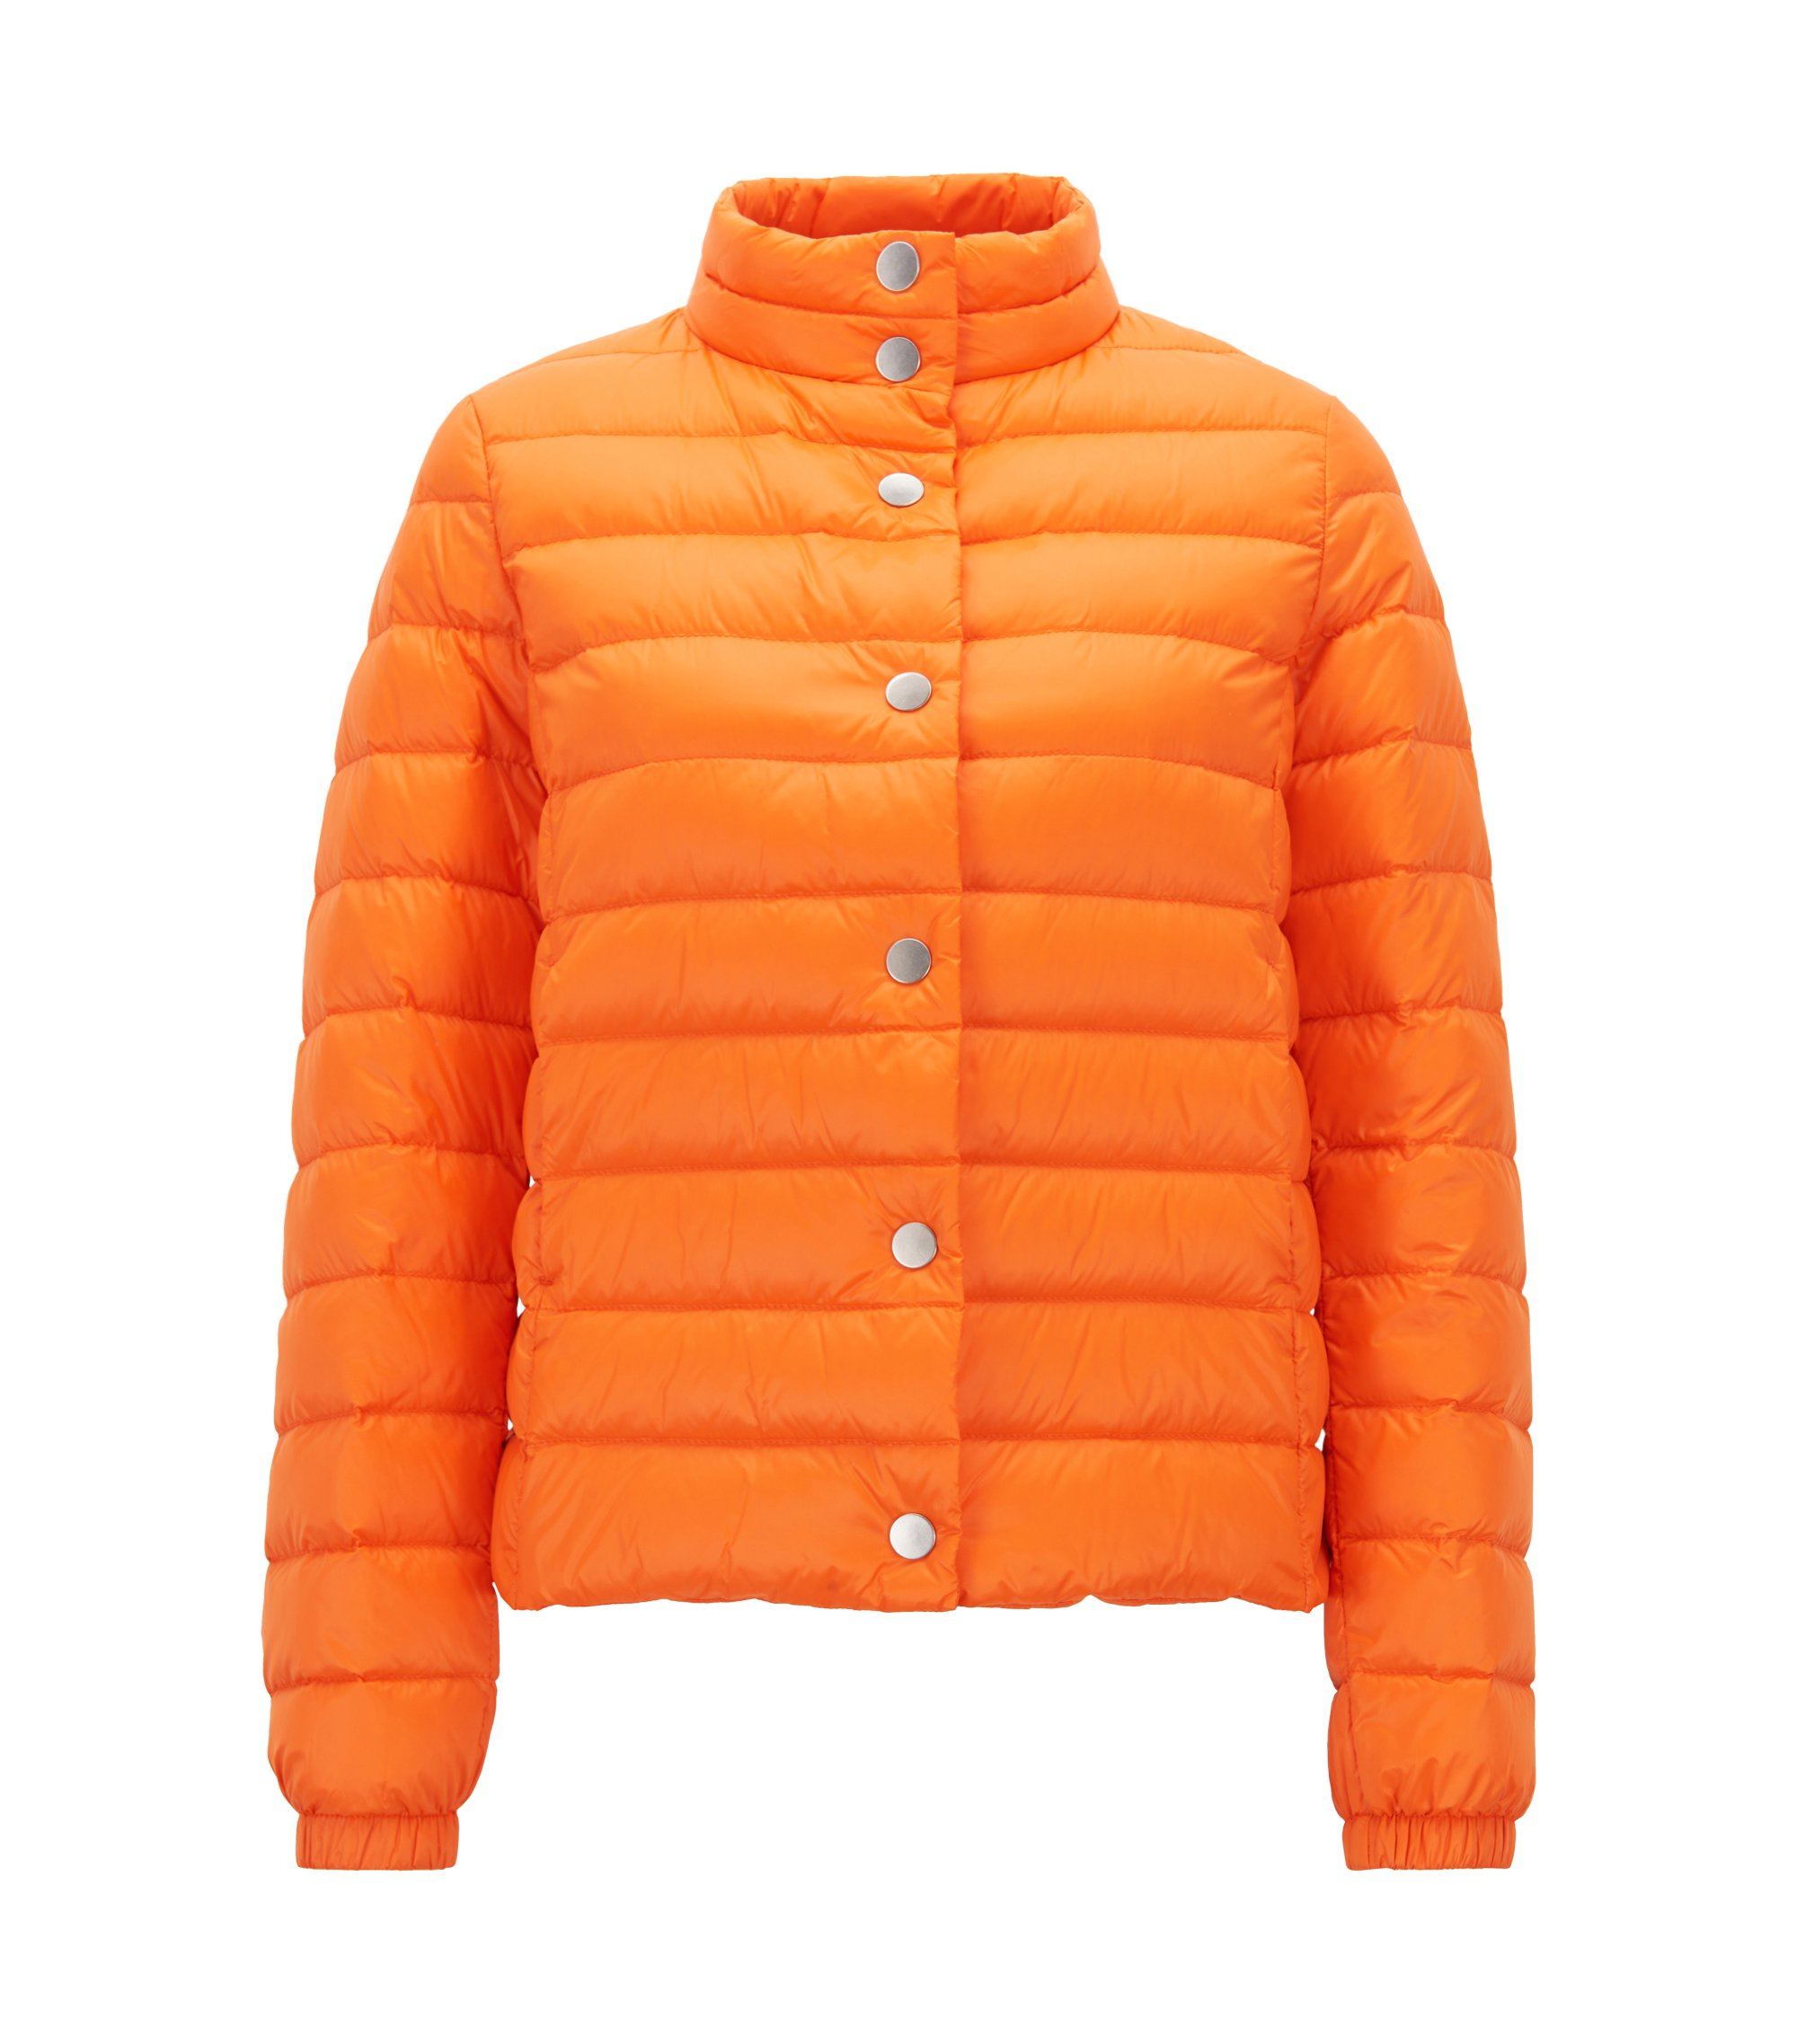 Lightweight water-repellent down jacket with packable bag, Orange